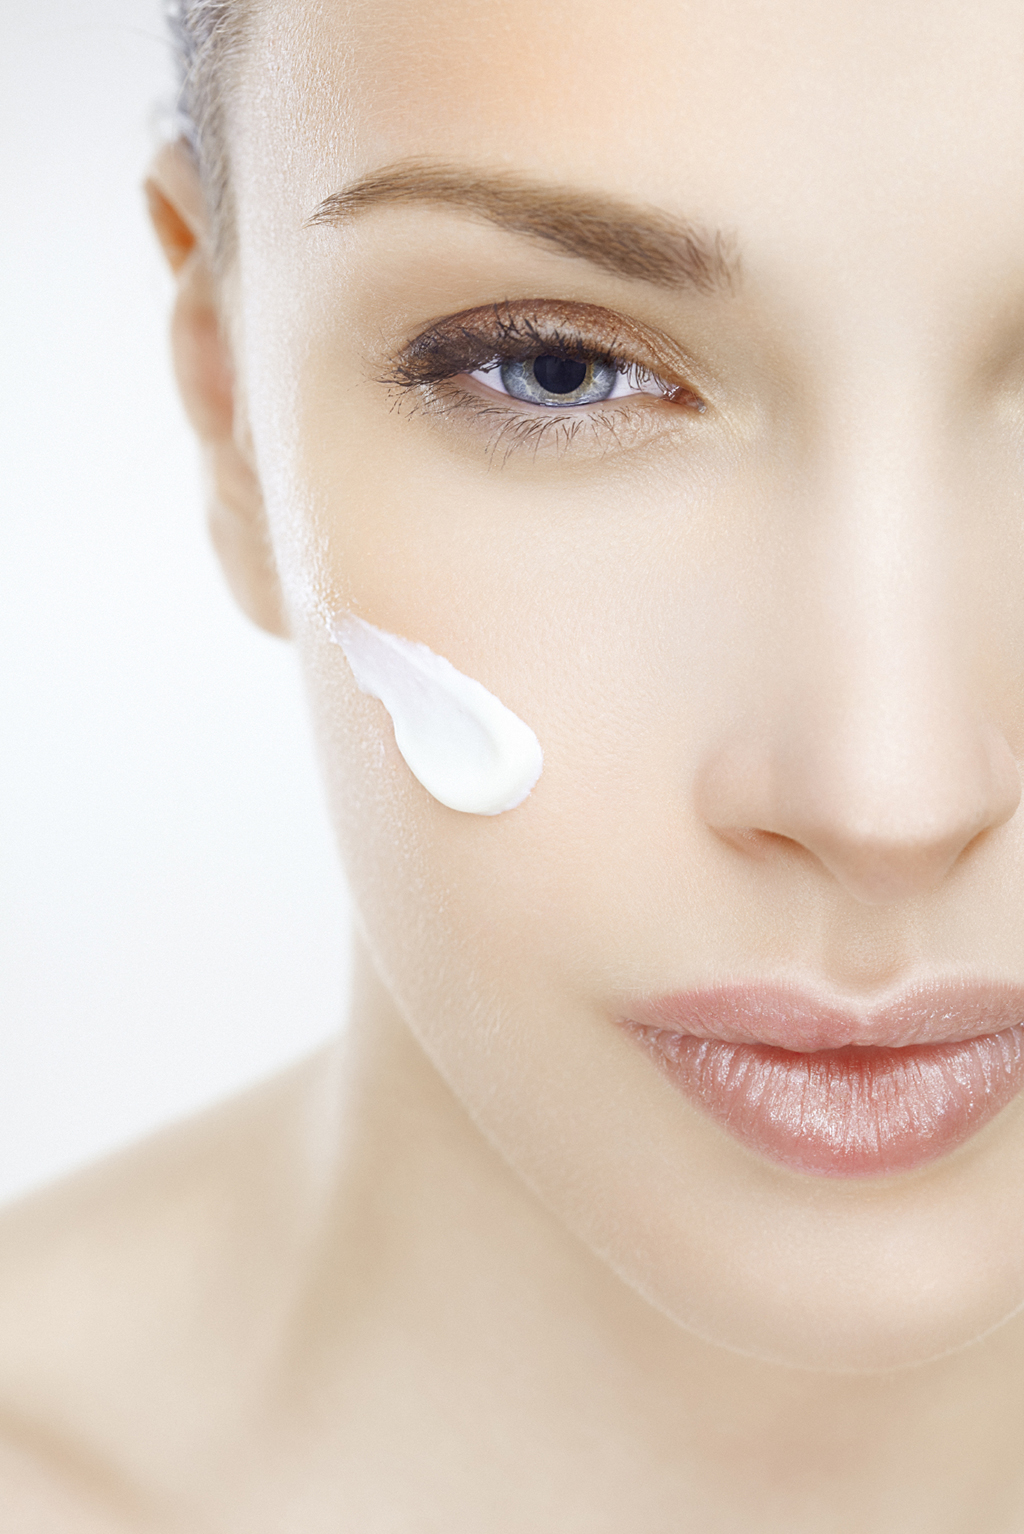 4 Steps To Correctly Apply Skin Care